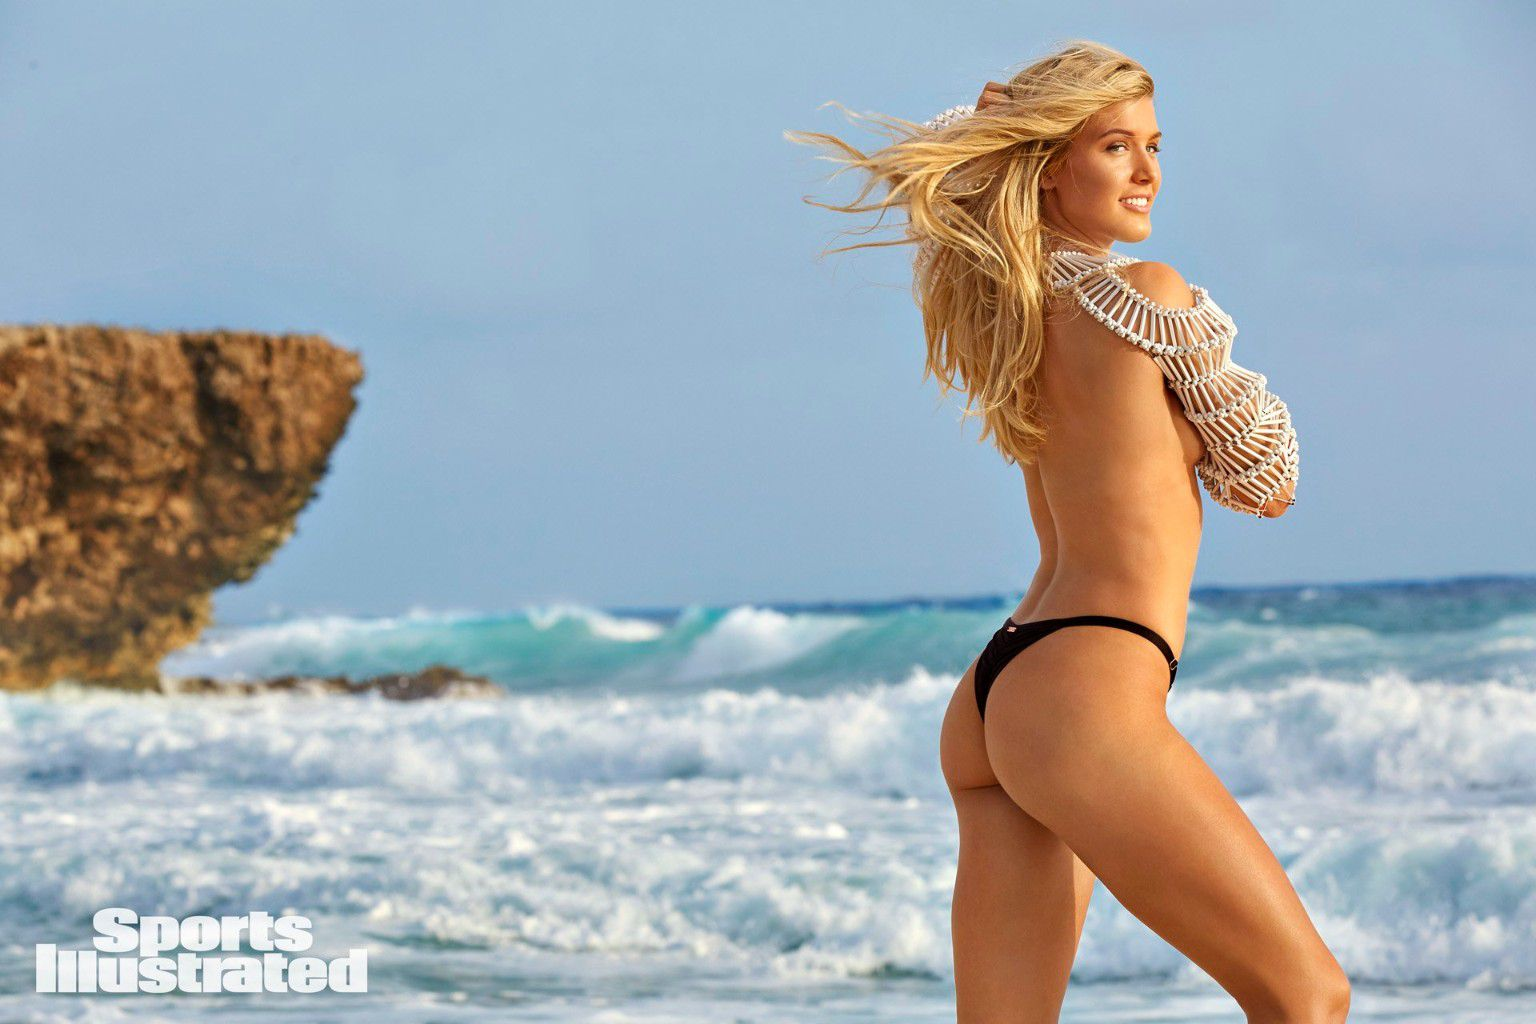 eugenie-bouchard-super-sexy-in-sports-illustrated-swimsuit-issue-2018-8